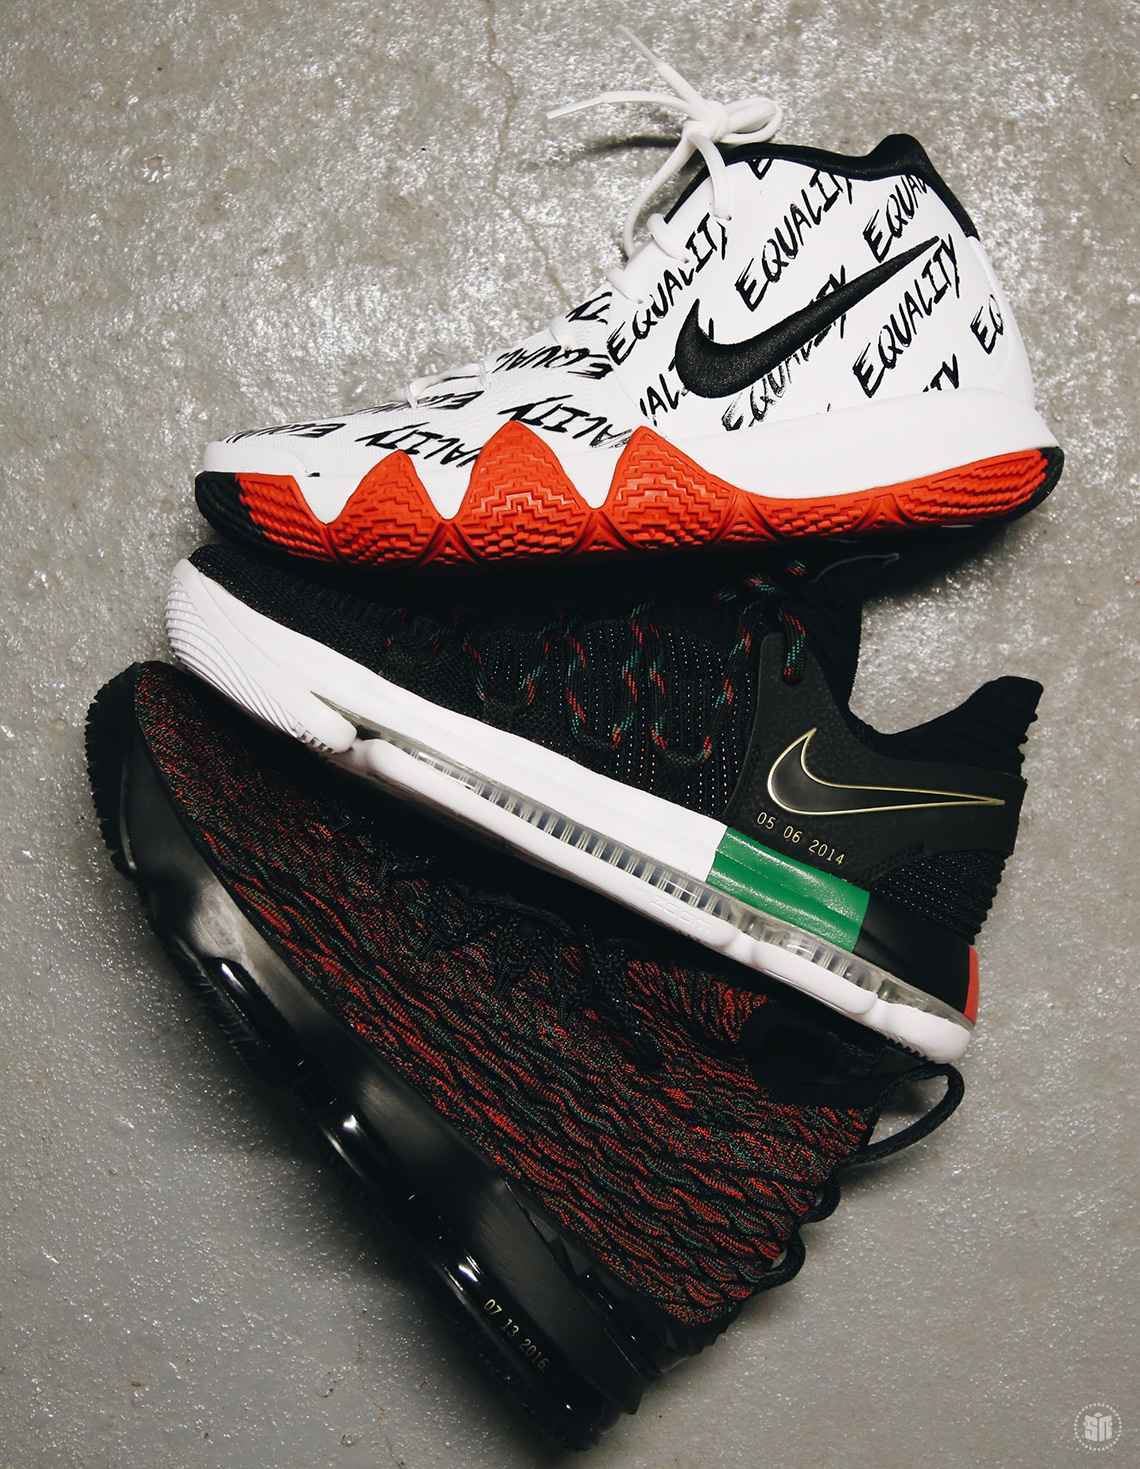 competitive price f7476 f196f ... Black History Month while raising awareness through footwear. The  entire Nike Basketball BHM Collection releases on January 15th on Nike  SNKRS and ...